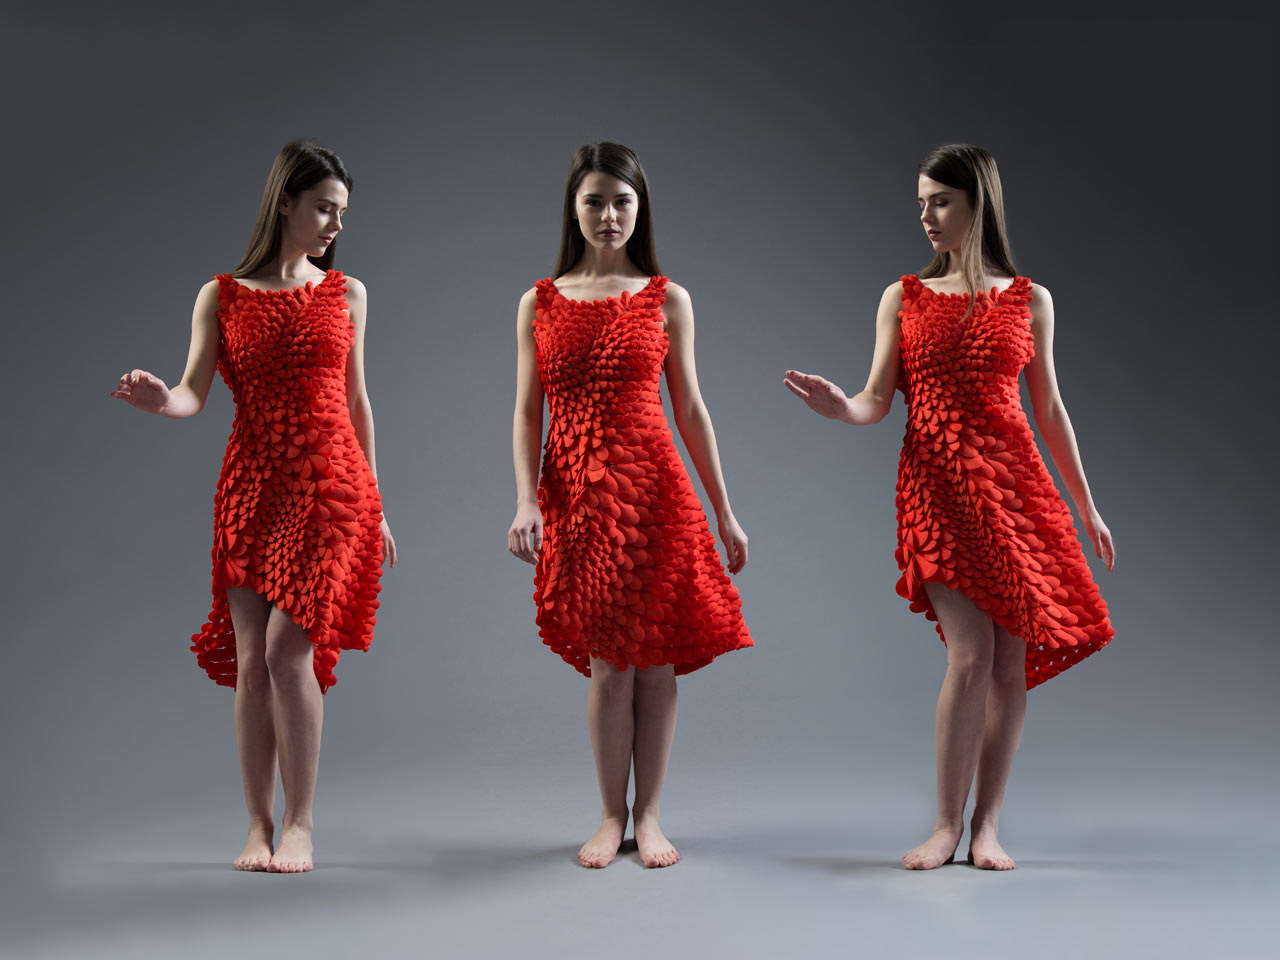 A 3D Printed Dress Inspired by Petals, Feathers, & Scales